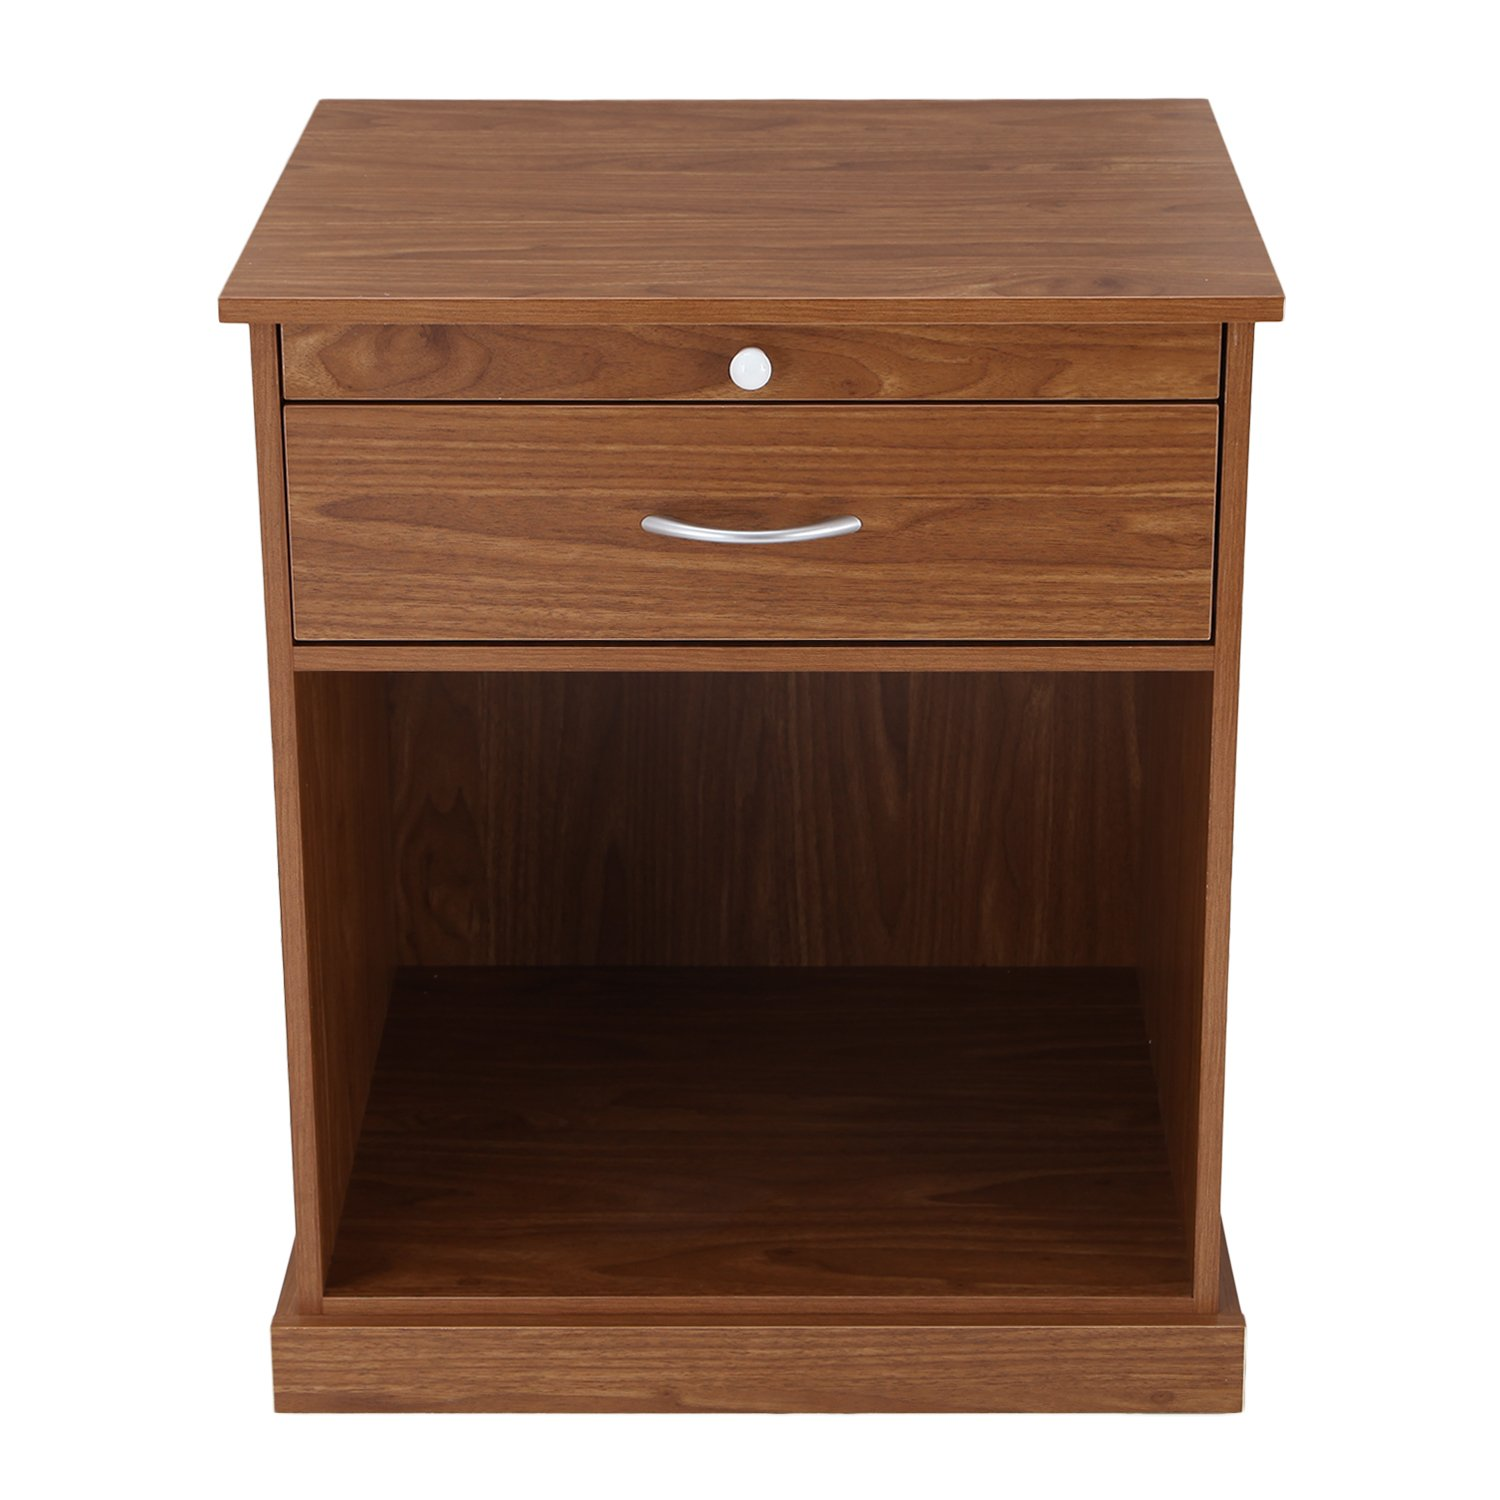 asense height wood square accent end table with wooden display drawers nightstands living room brown home kitchen outside patio chairs round tops side furniture barn door